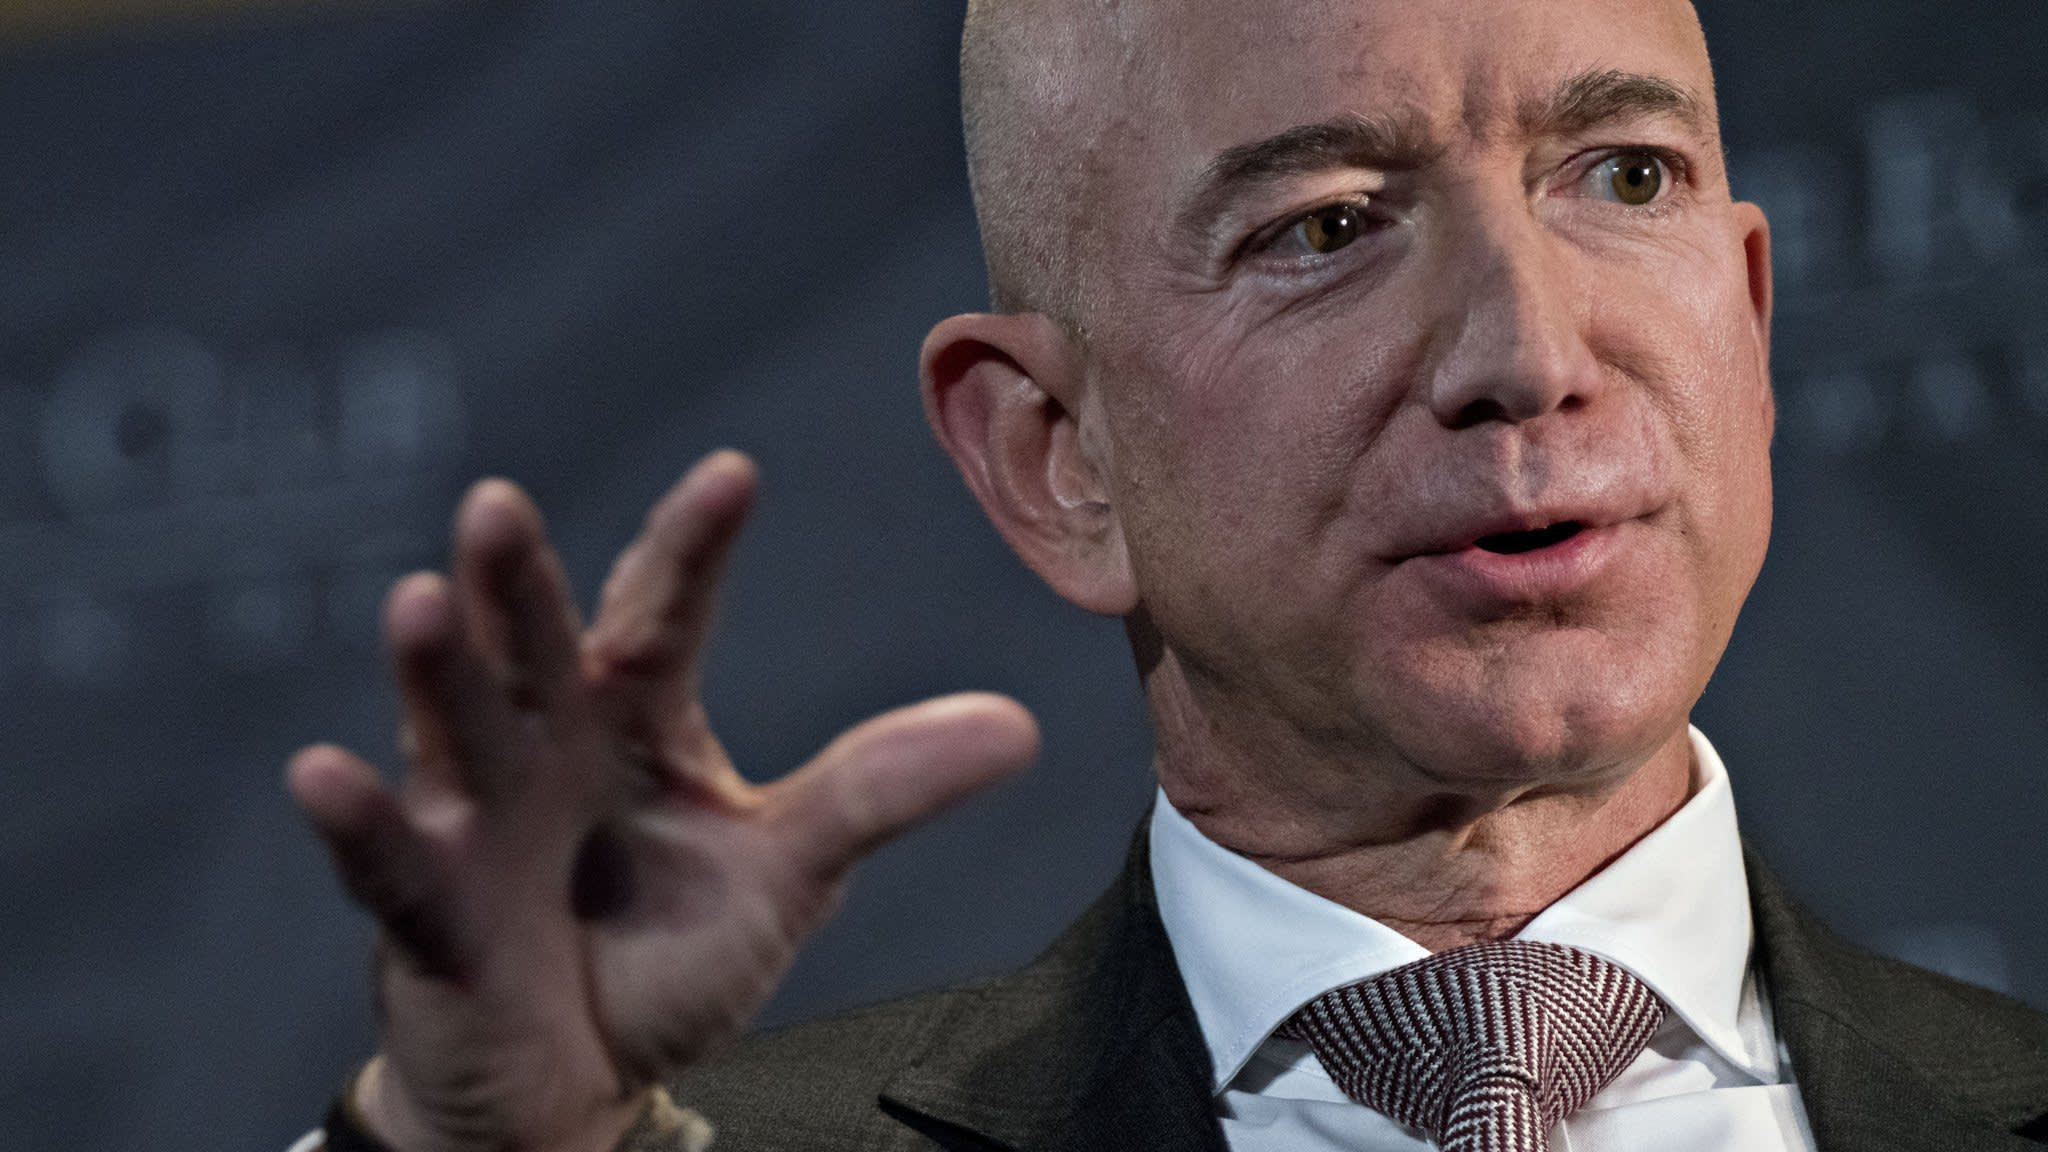 Speculation over Amazon's 'HQ2' choice grips investors